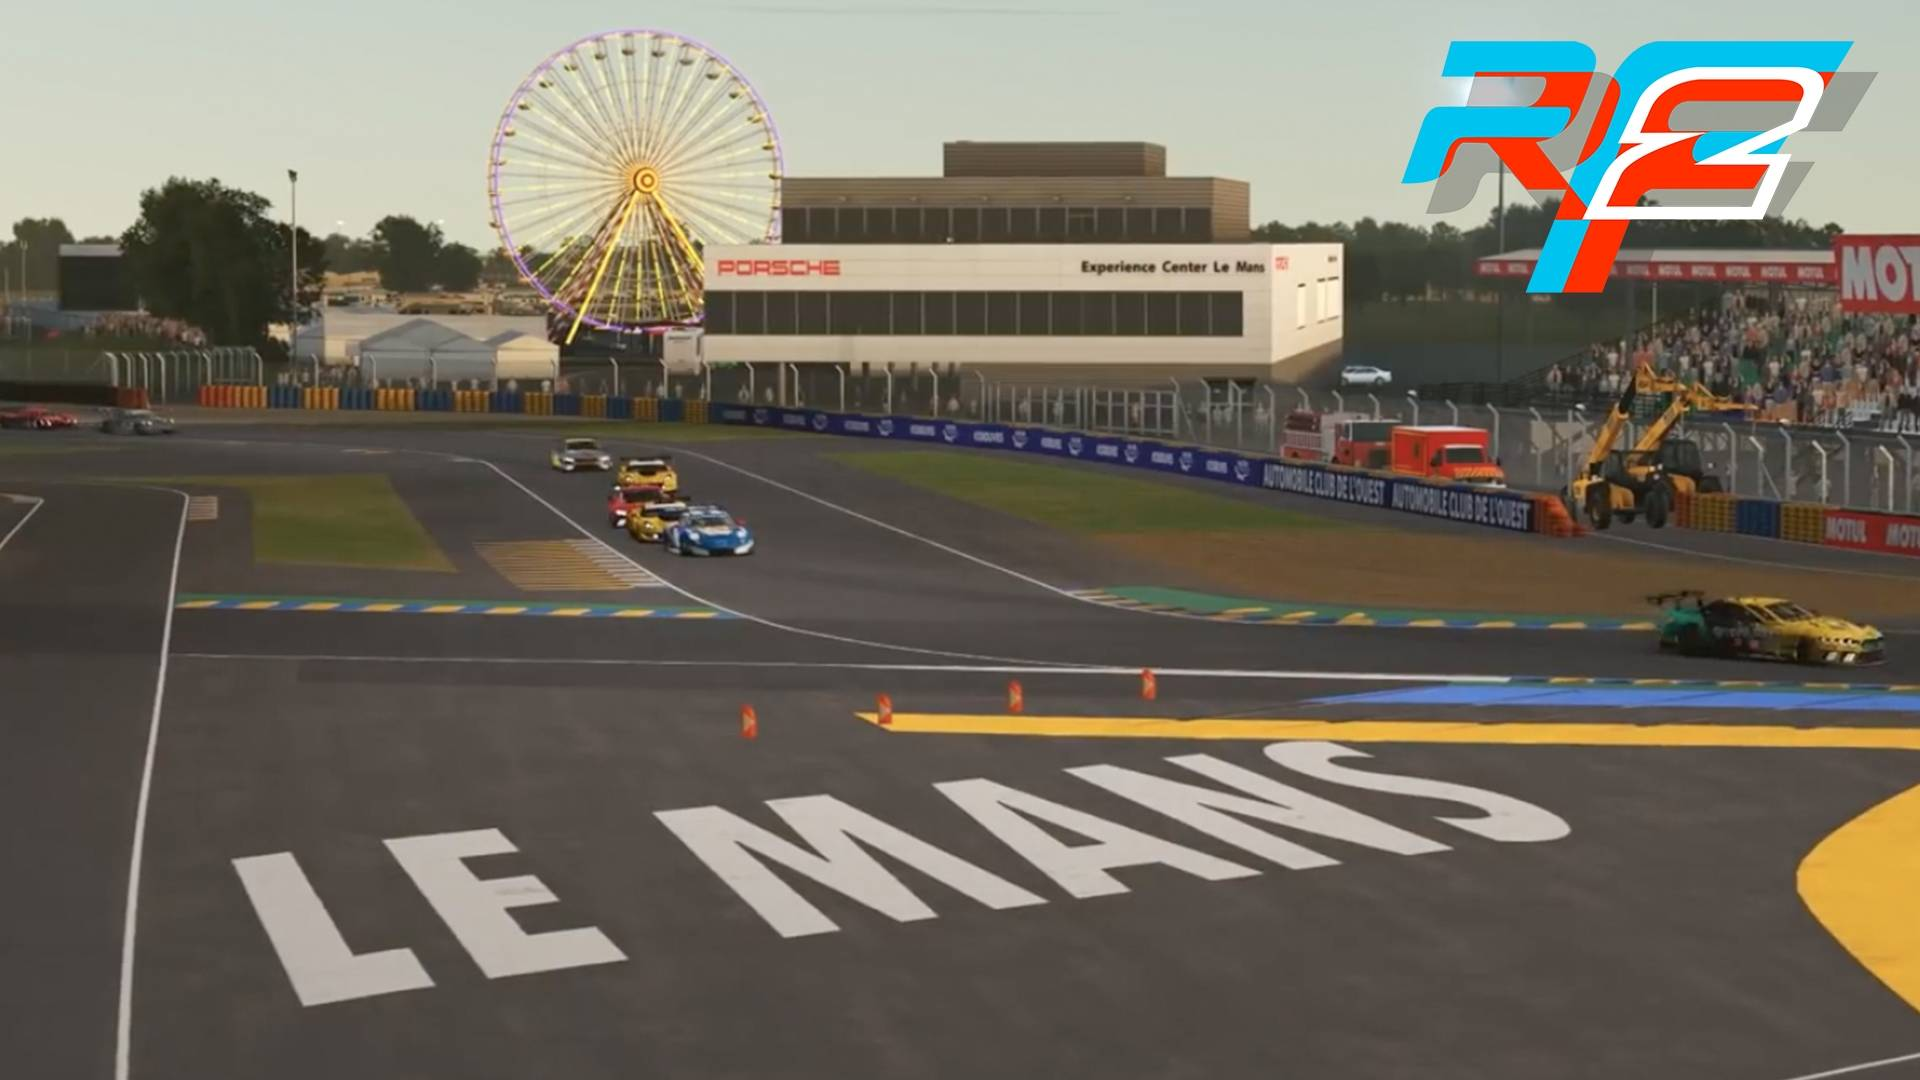 The rFactor 24 at Le Mans